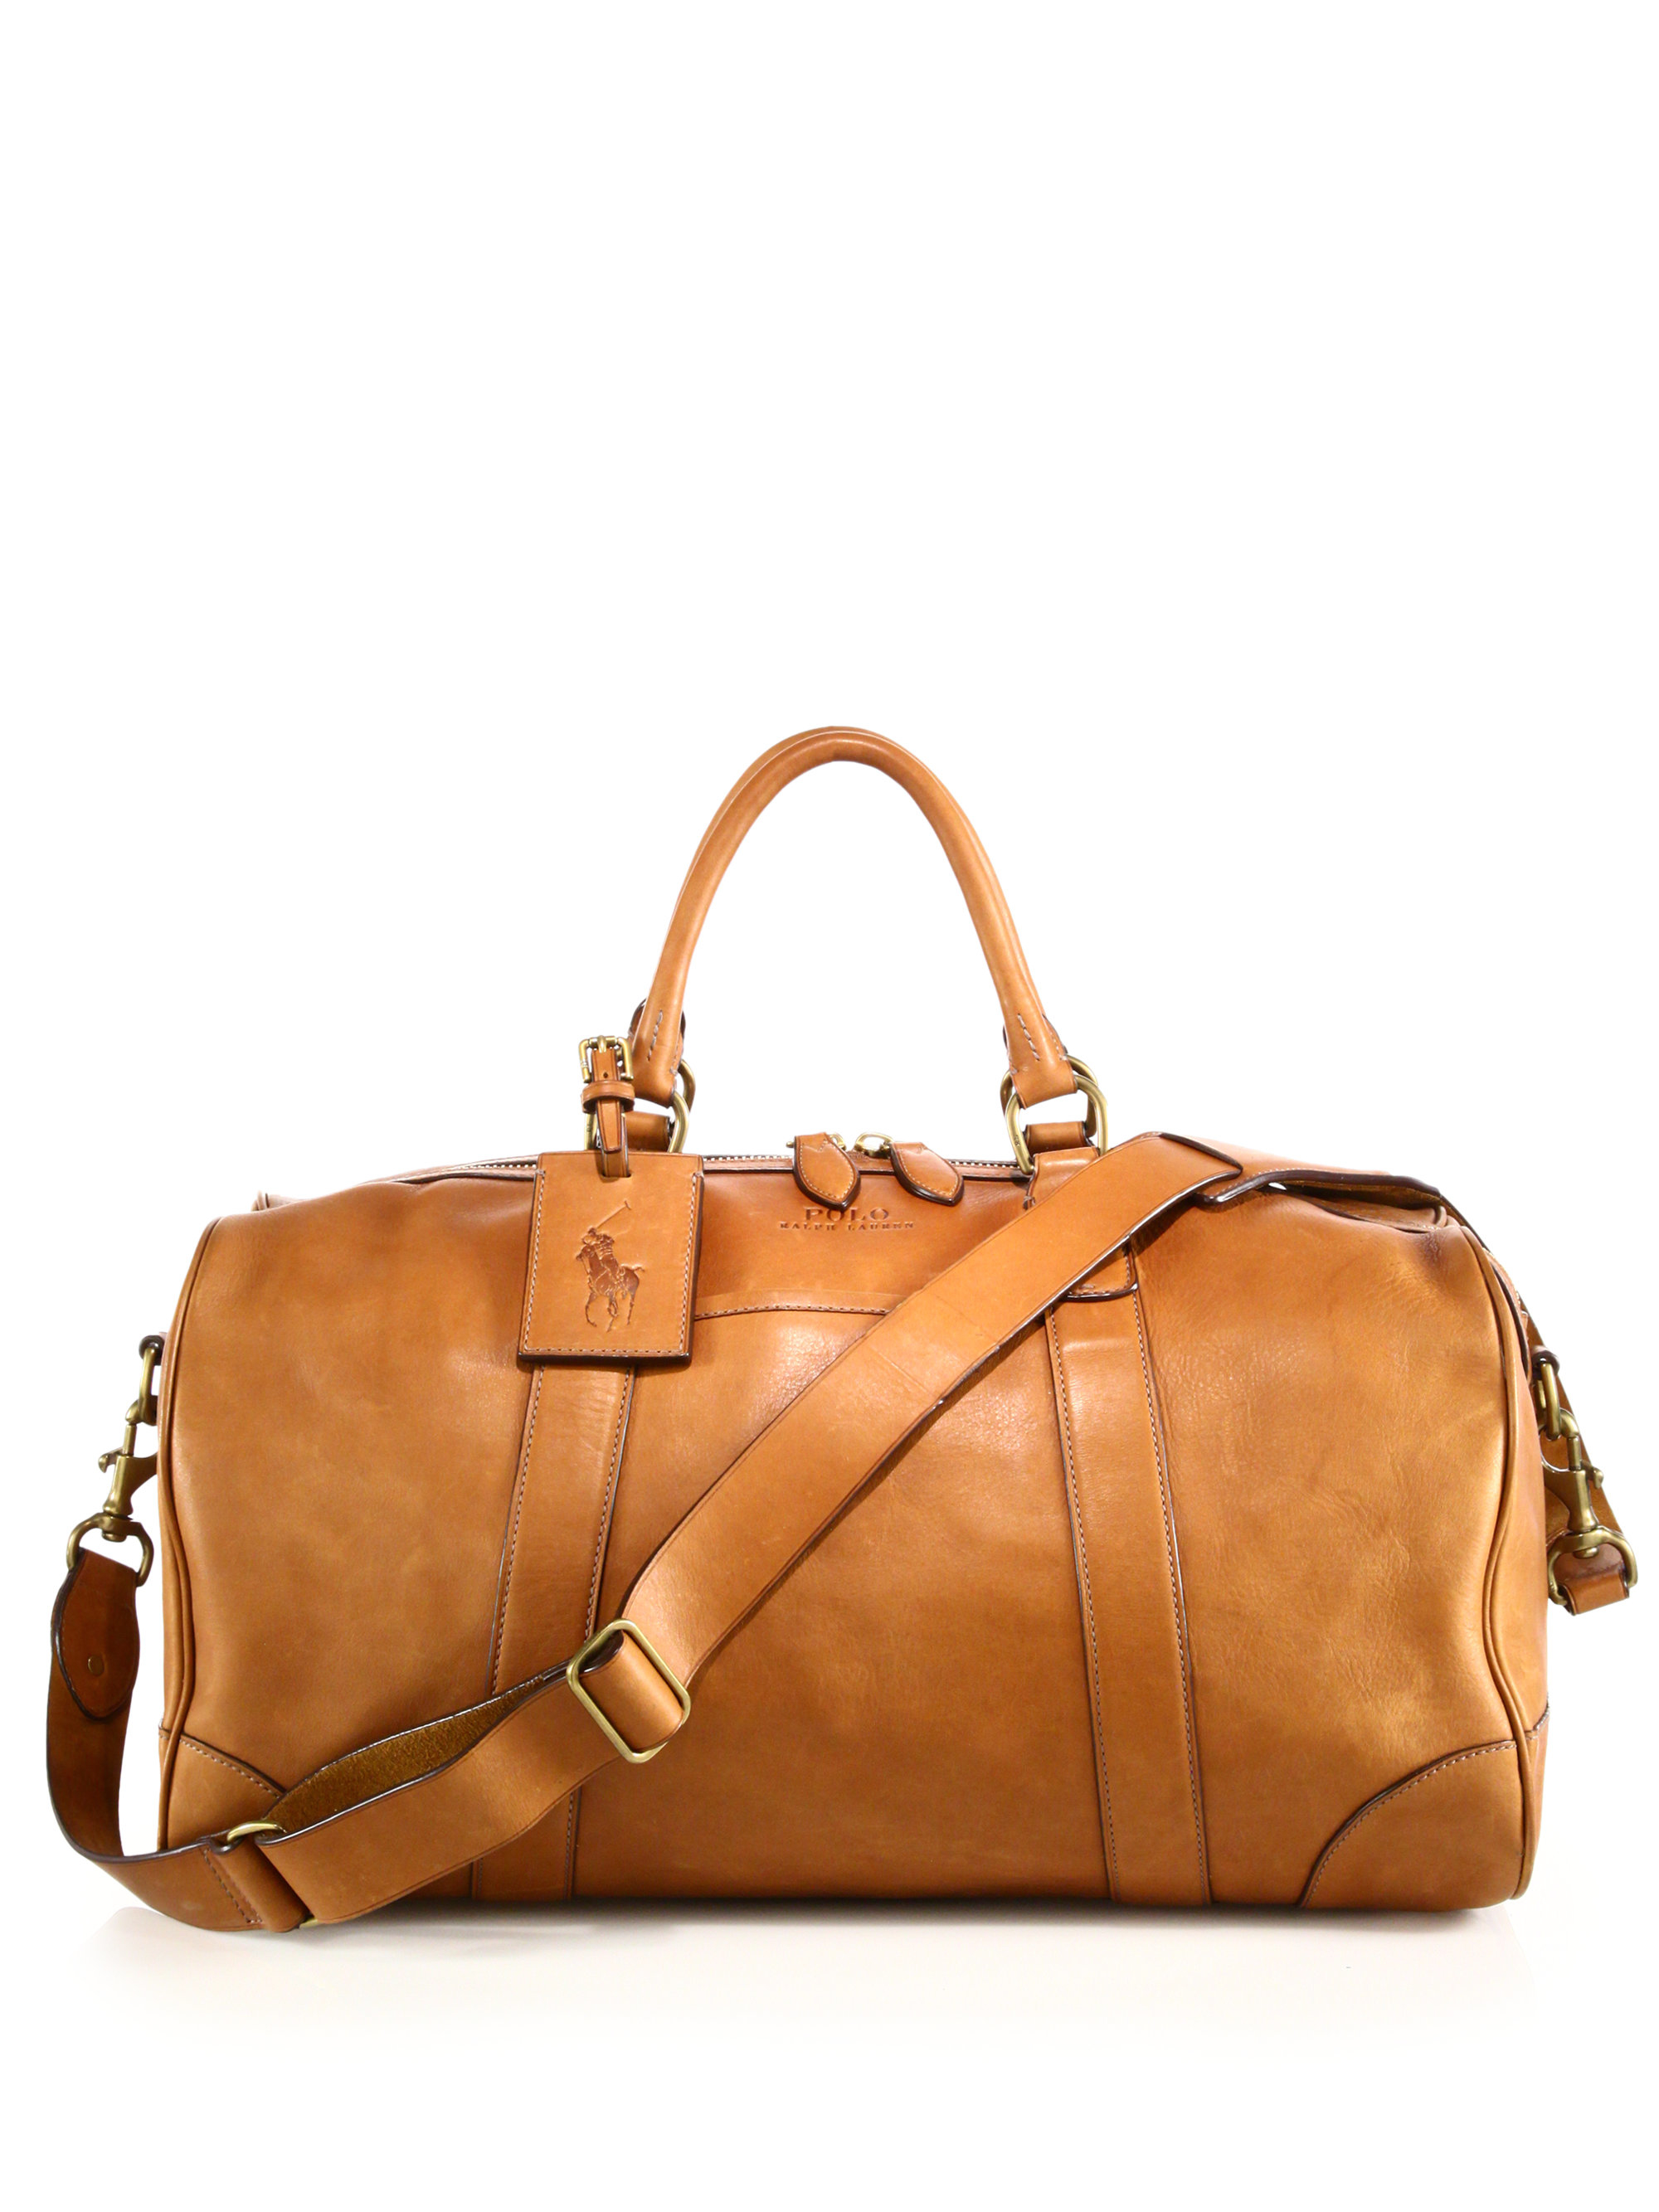 6943d954166e ... usa lyst polo ralph lauren leather duffel bag in brown for men 35b72  6dc30